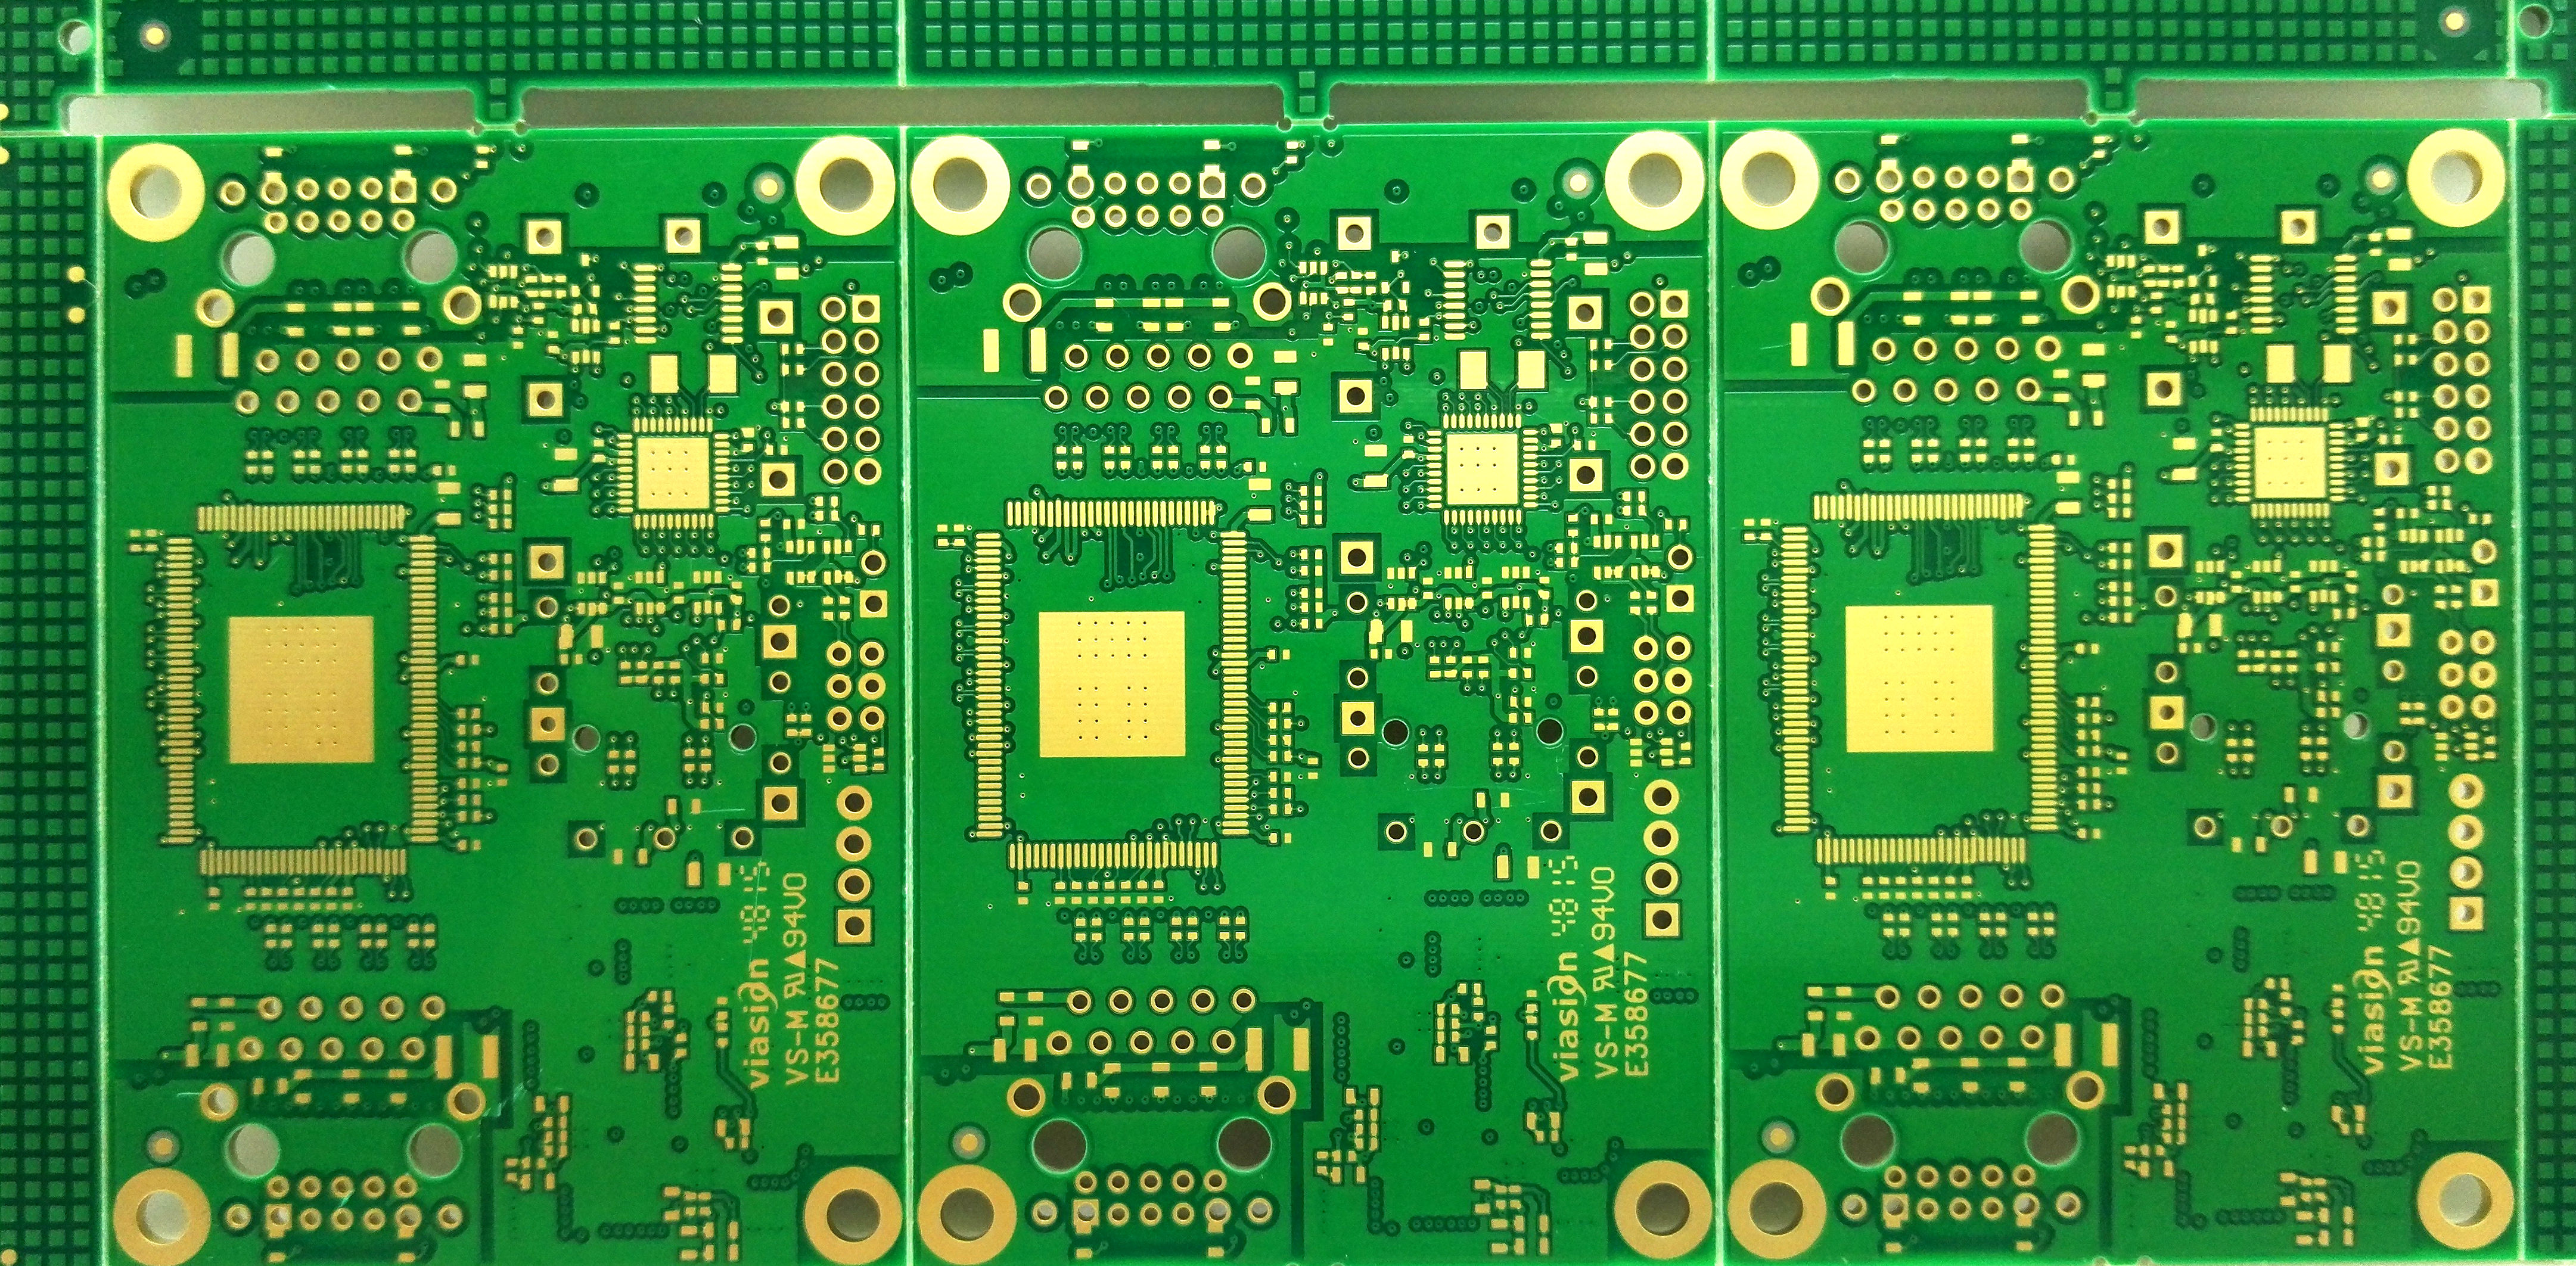 4 layers high TG 170 FR4 PCB used in HDD portable media players